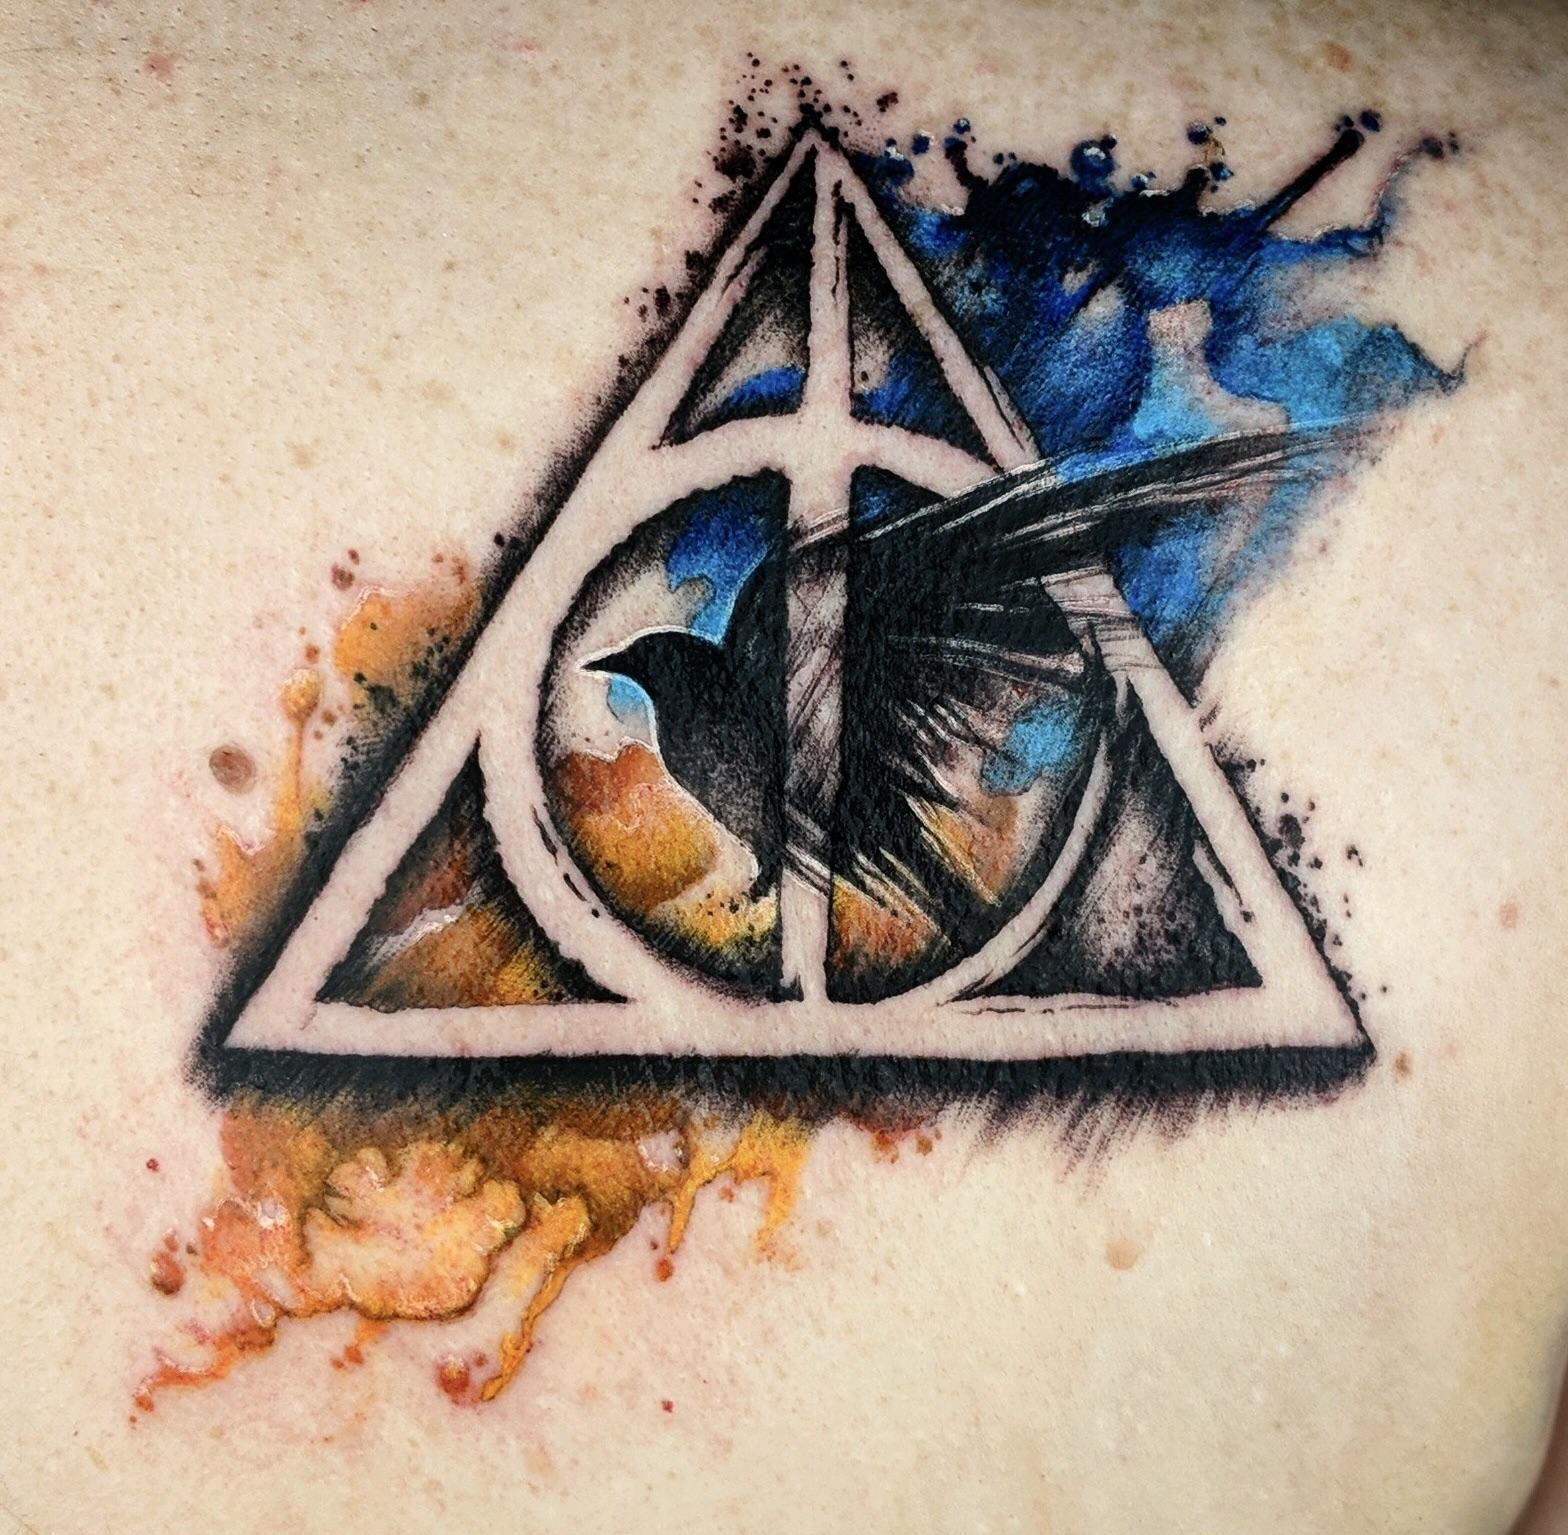 Ravenclaw Themed Deathly Hallows By Cat At Madd Tatterz In Riverside Ca Ravenclaw Tattoo Harry Potter Tattoos Harry Potter Illustrations